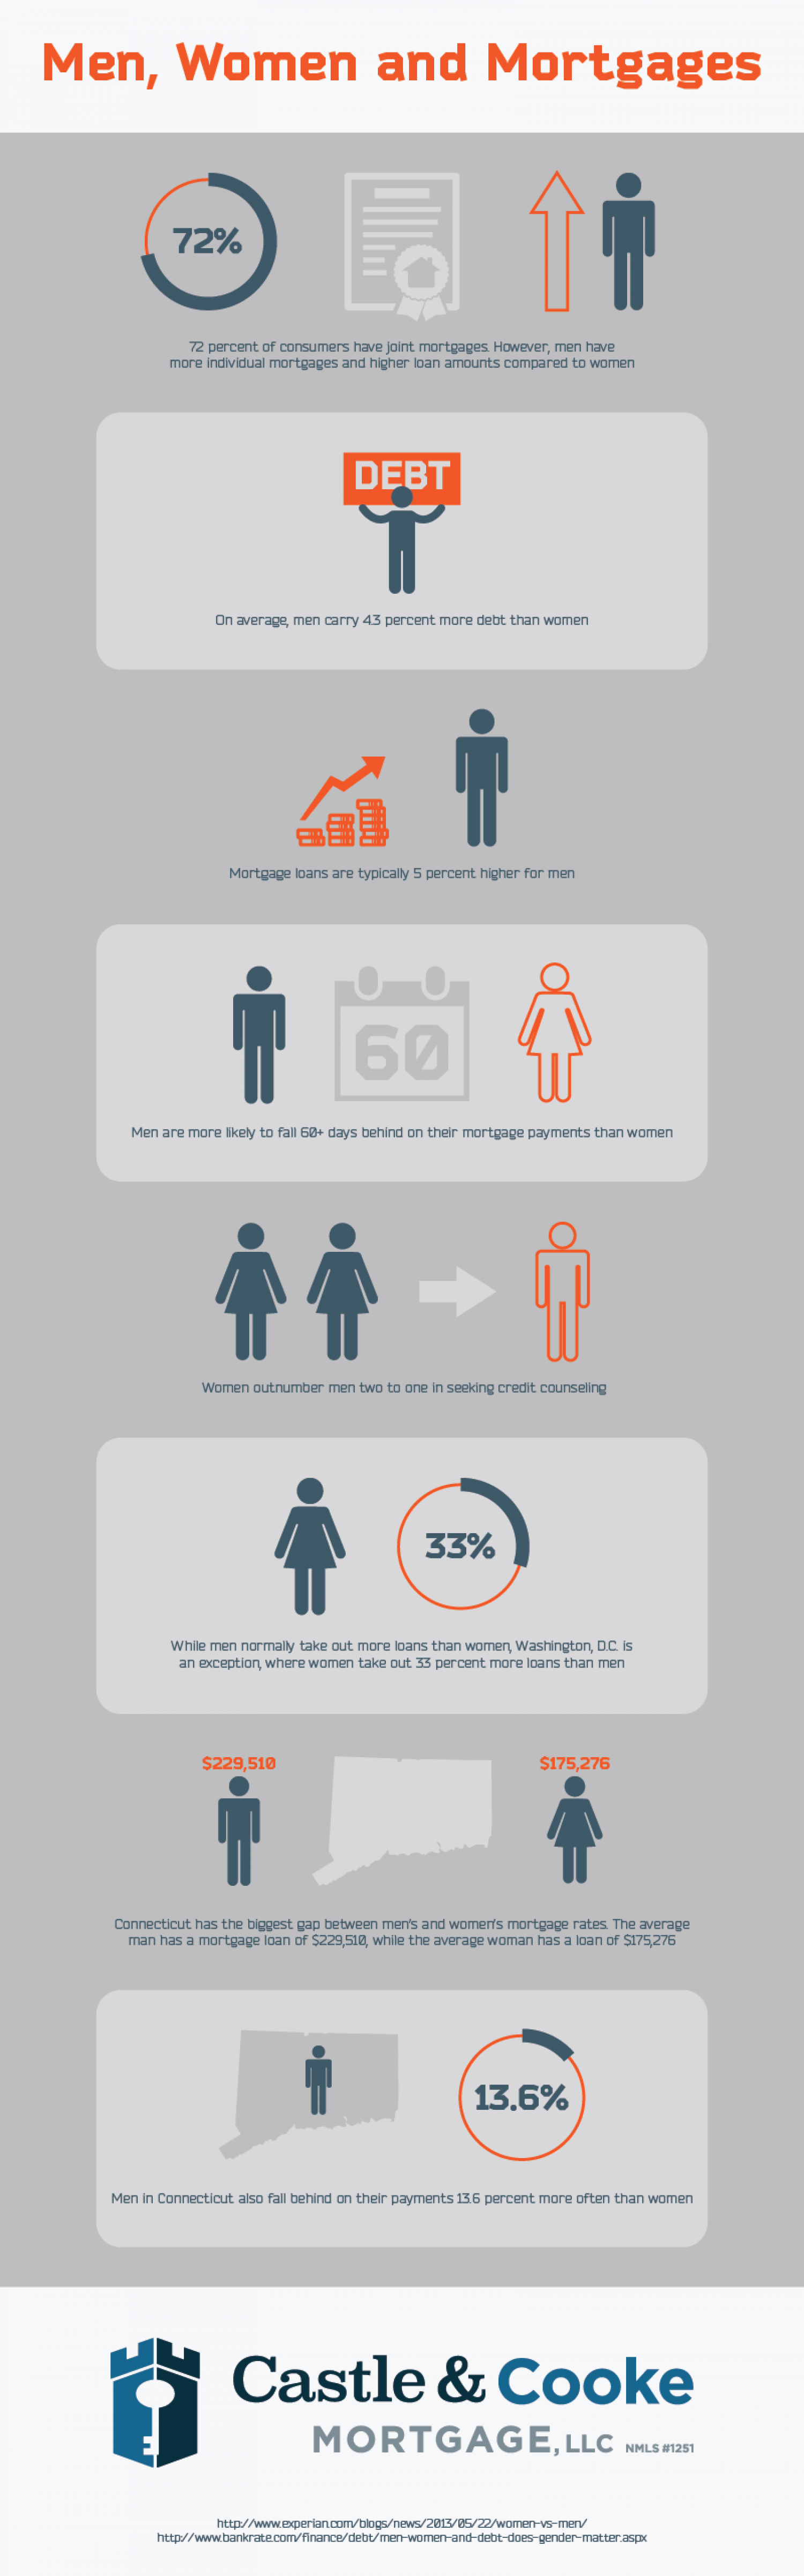 Men, Women, and Mortgages Infographic